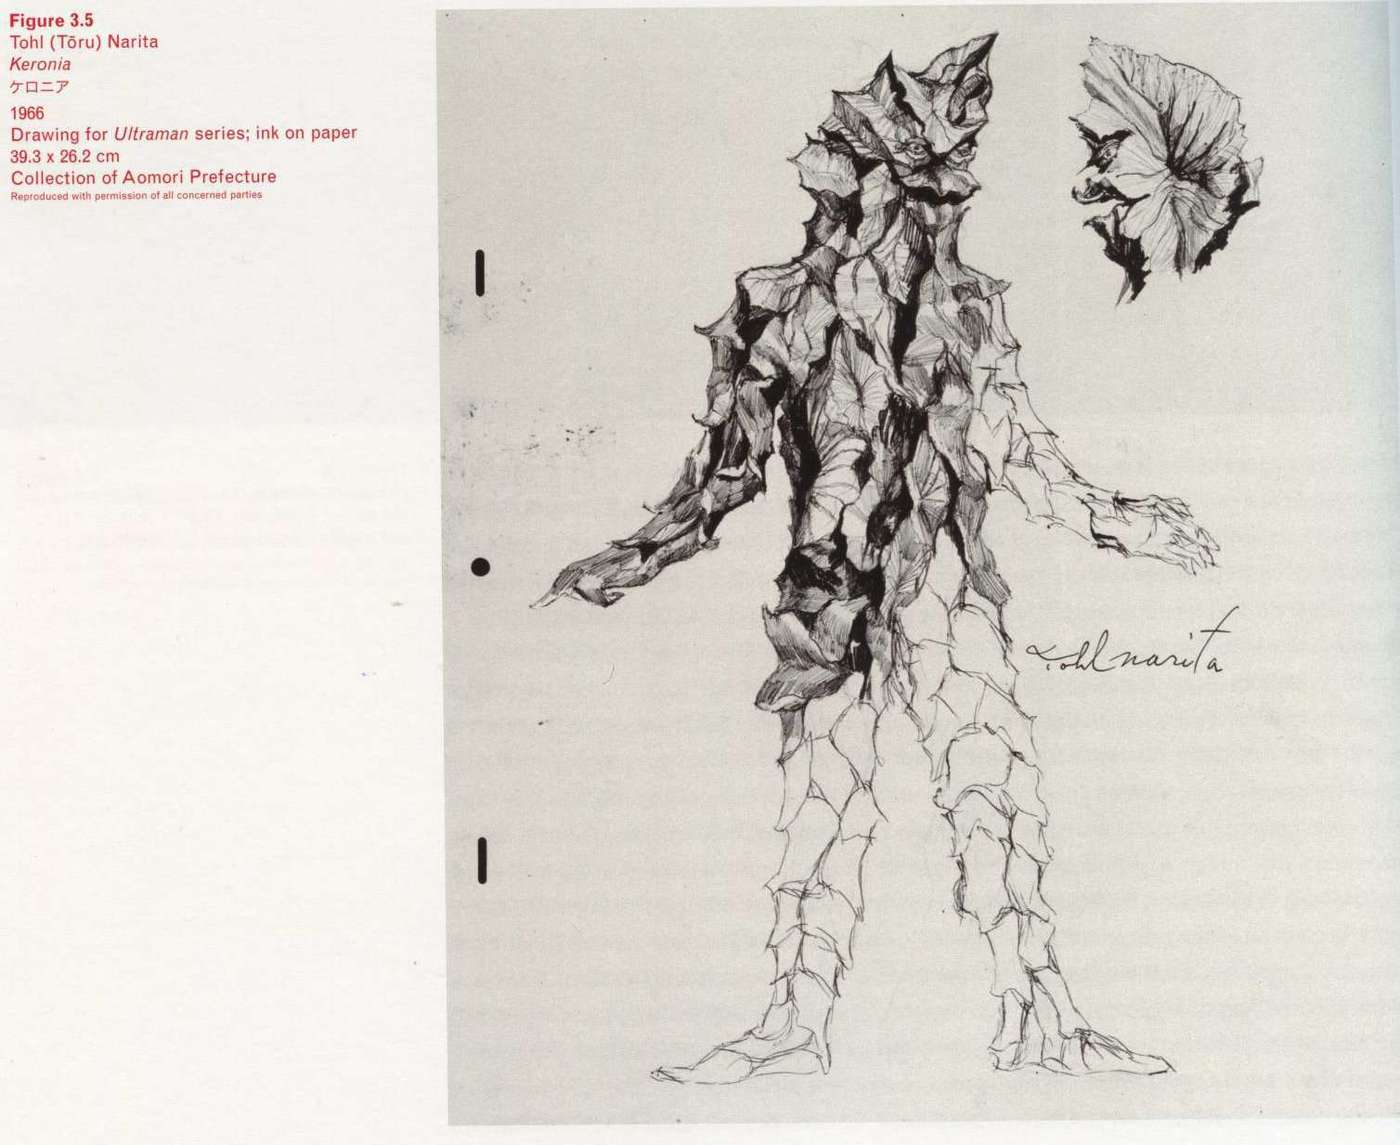 Caption left bottom: Tohl (Toru) Narita, Keronia, 1966, Drawing for Ultraman series; ink on paper, 39.3 x 26.2 cm, Collection of Aomori Prefecture